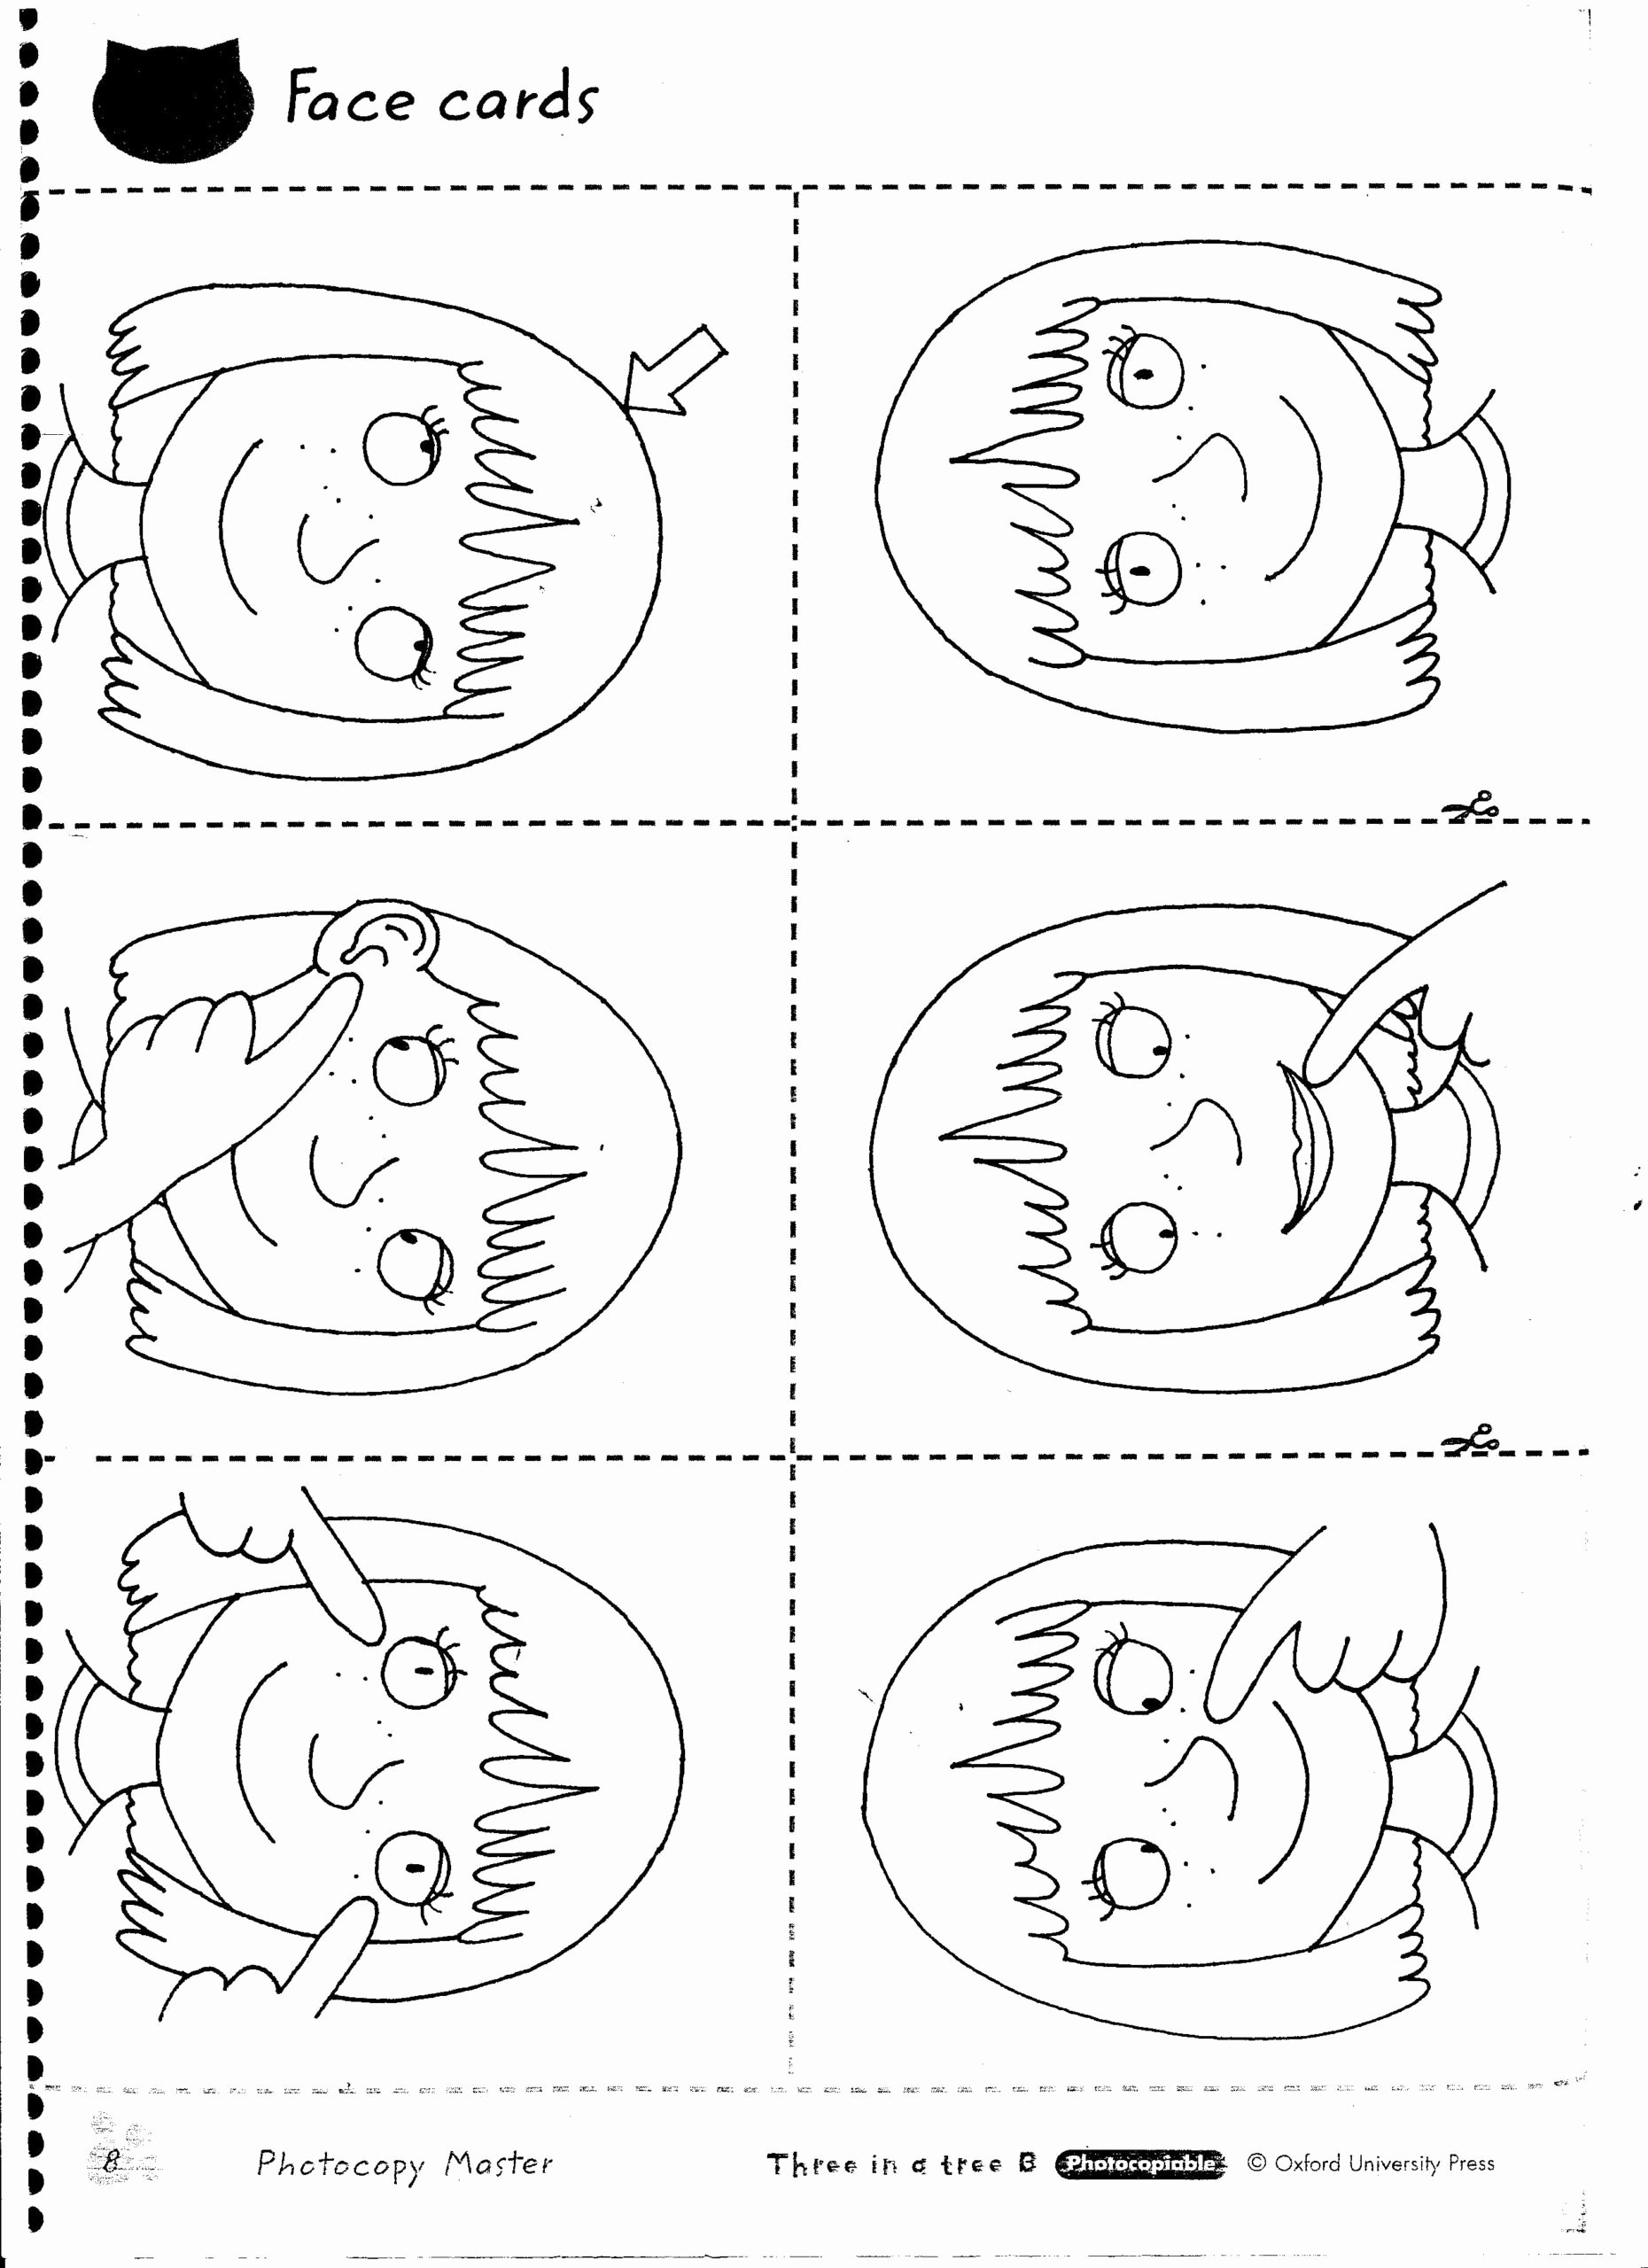 Worksheets for Preschoolers at Home Lovely Coloring Body Parts for Kids Home Preschool Worksheets